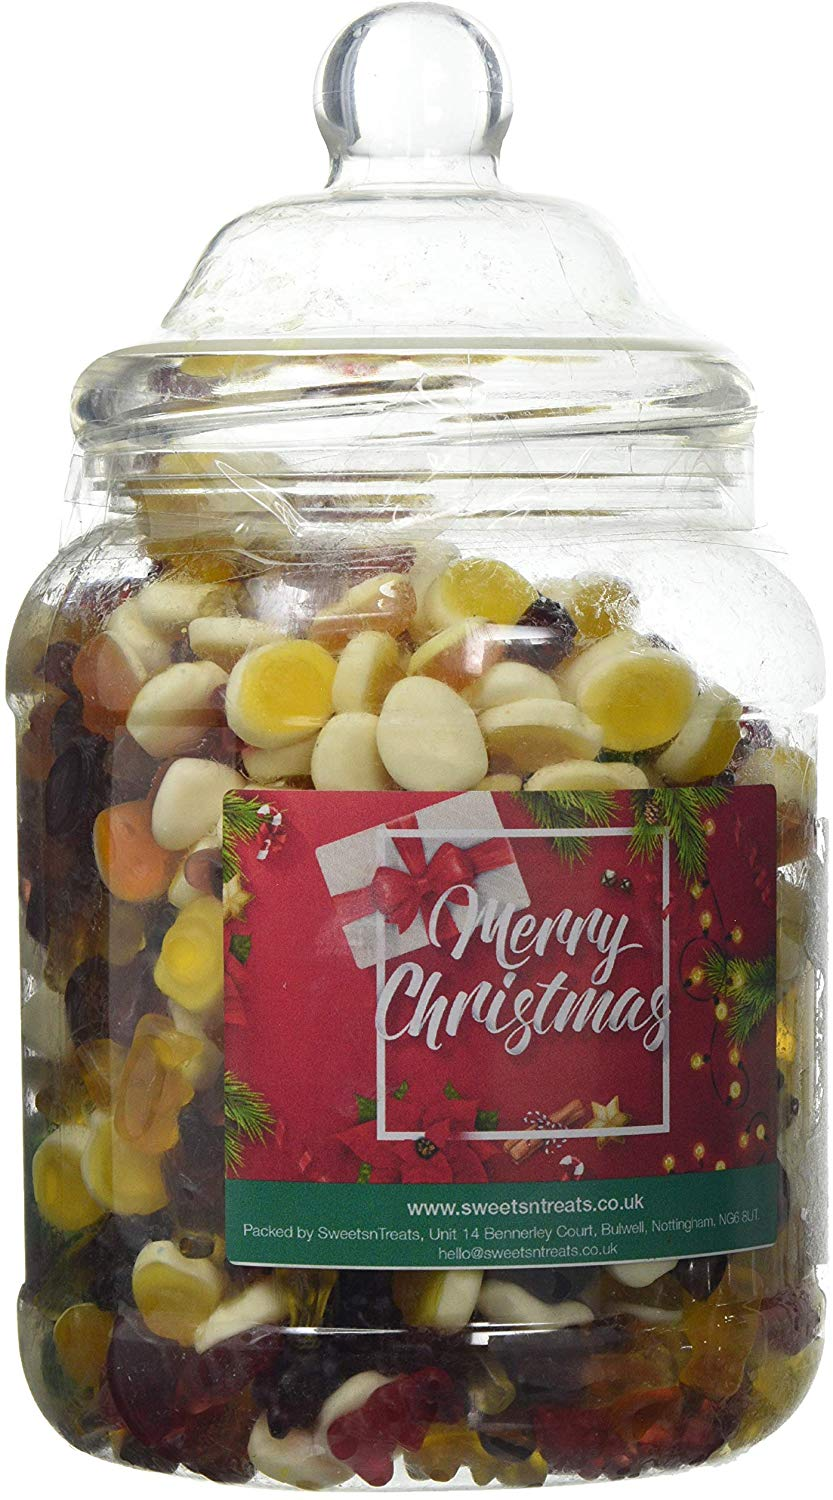 Mr Tubbys Jelly Mix - Merry Christmas Red Label - Large Jar 1500g